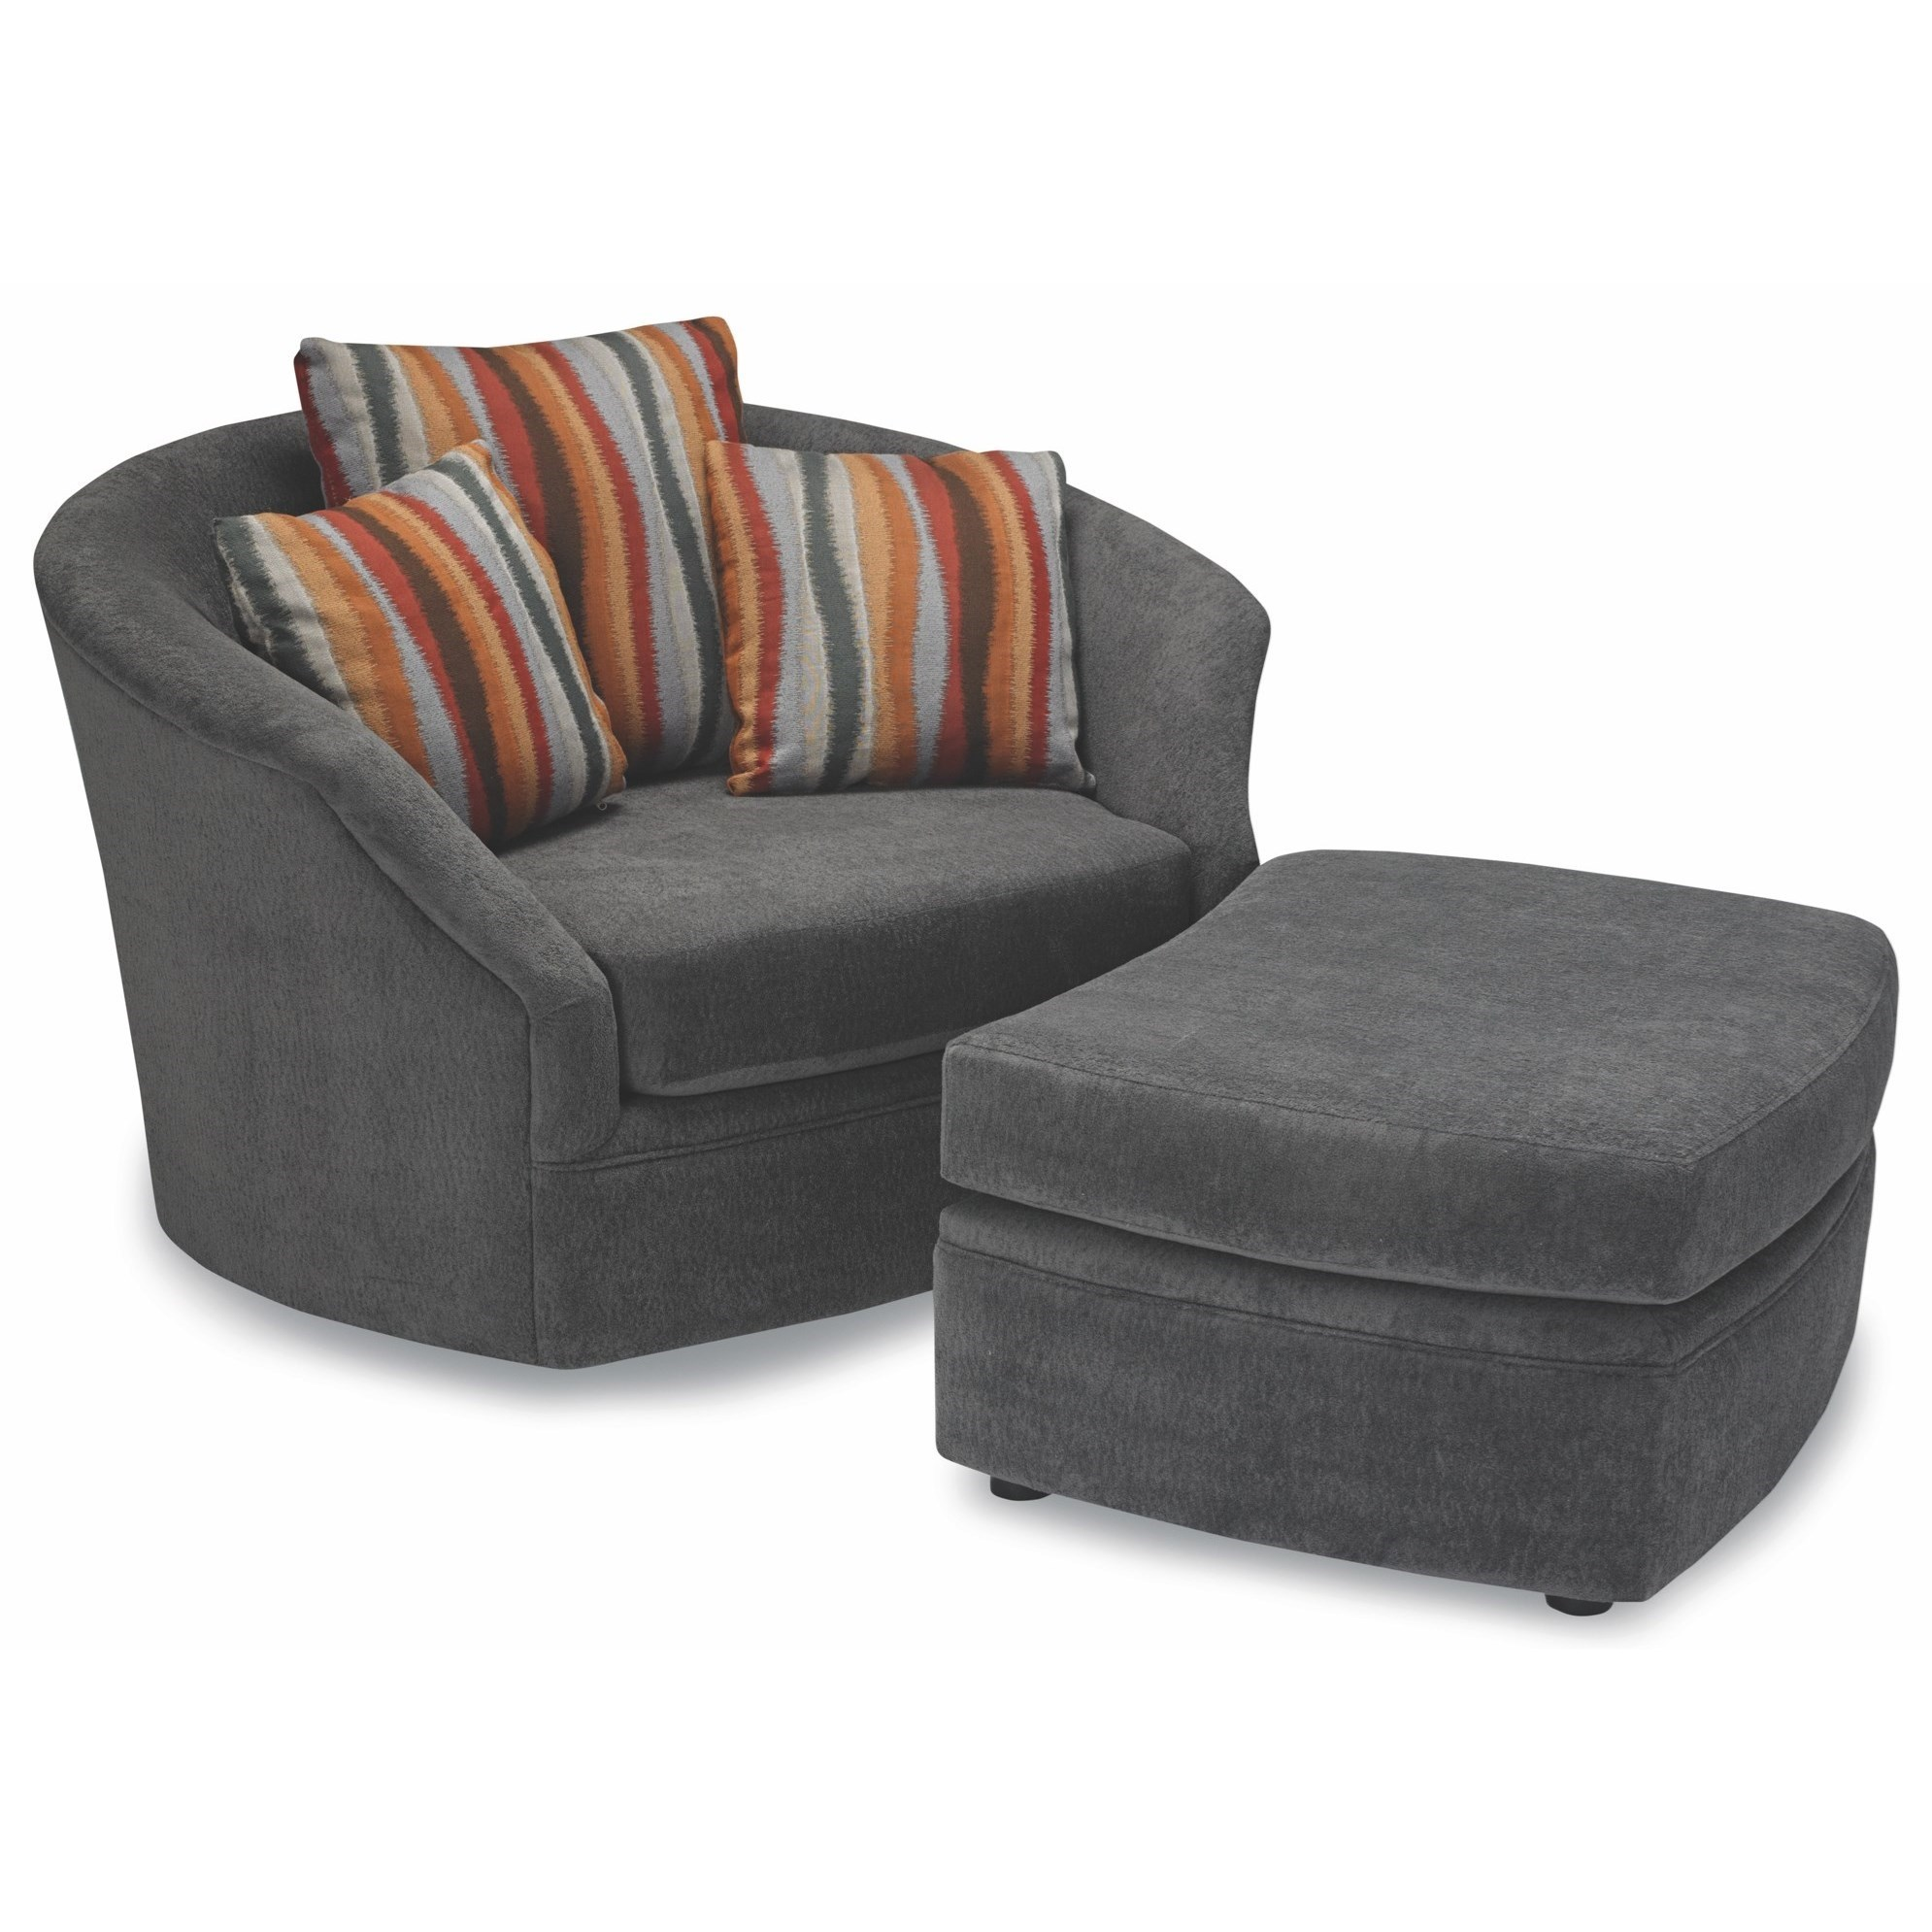 Oversized Chair And Ottoman Set 8212 Oversized Swivel Chair And Ottoman Set With Three Toss